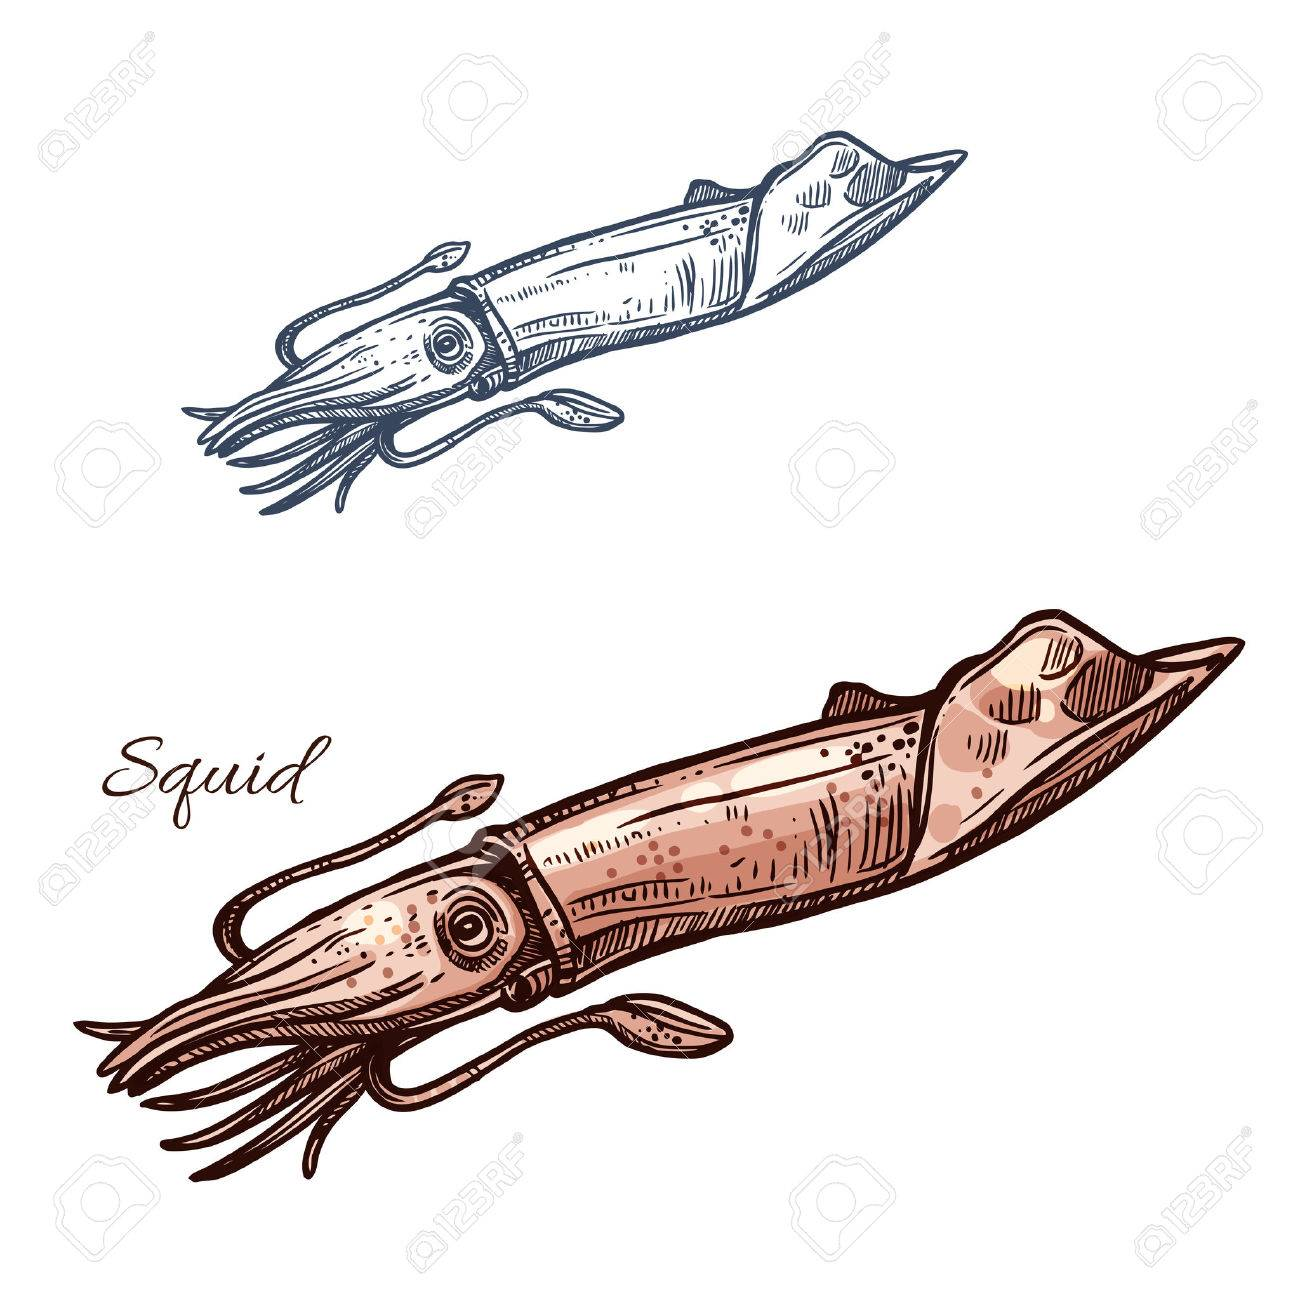 Squid sketch vector icon. Calamari or ocean cuttlefish mollusk species. Isolated symbol for seafood restaurant sign or emblem, fishing sport club or fishery industry, sea food and fish market or shop - 72313369